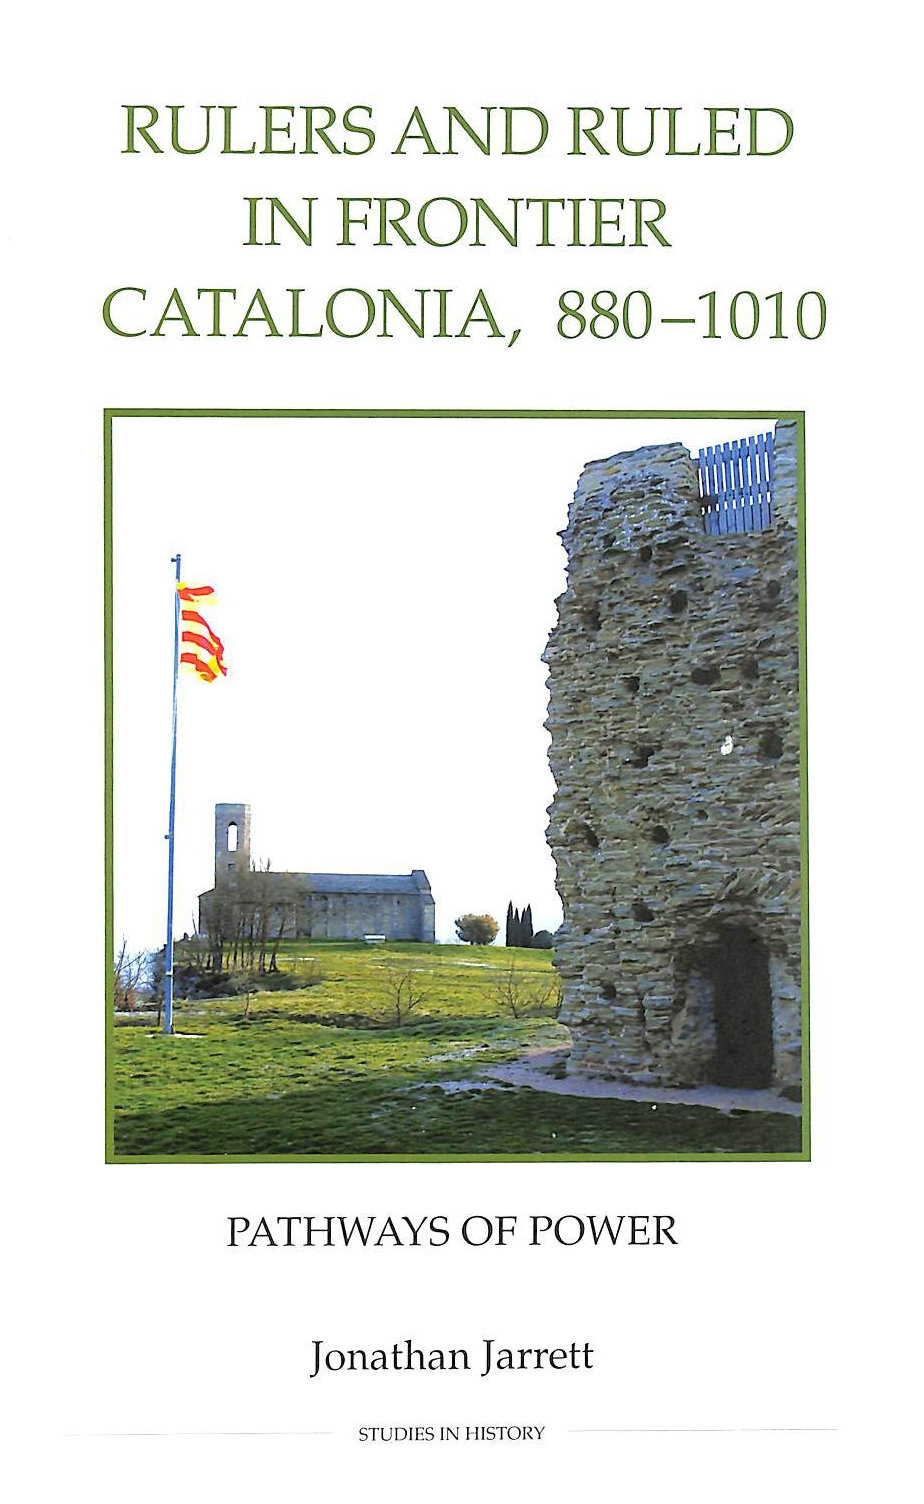 Image for Rulers and Ruled in Frontier Catalonia, 880-1010: Pathways of Power (Royal Historical Society Studies in History)